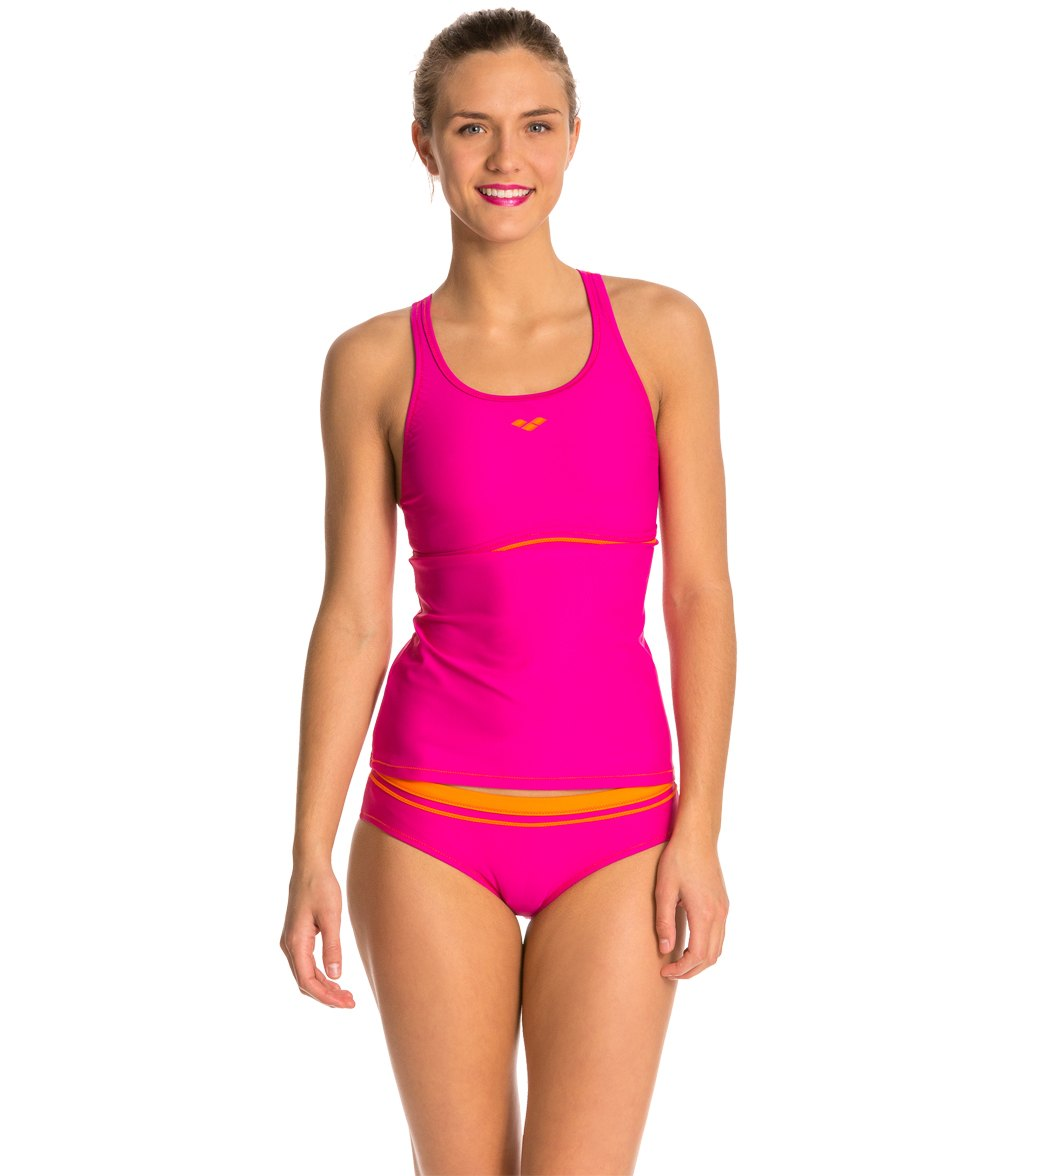 549aed4b1b Arena Sporty Tankini Top Swimsuit Set at SwimOutlet.com - Free Shipping